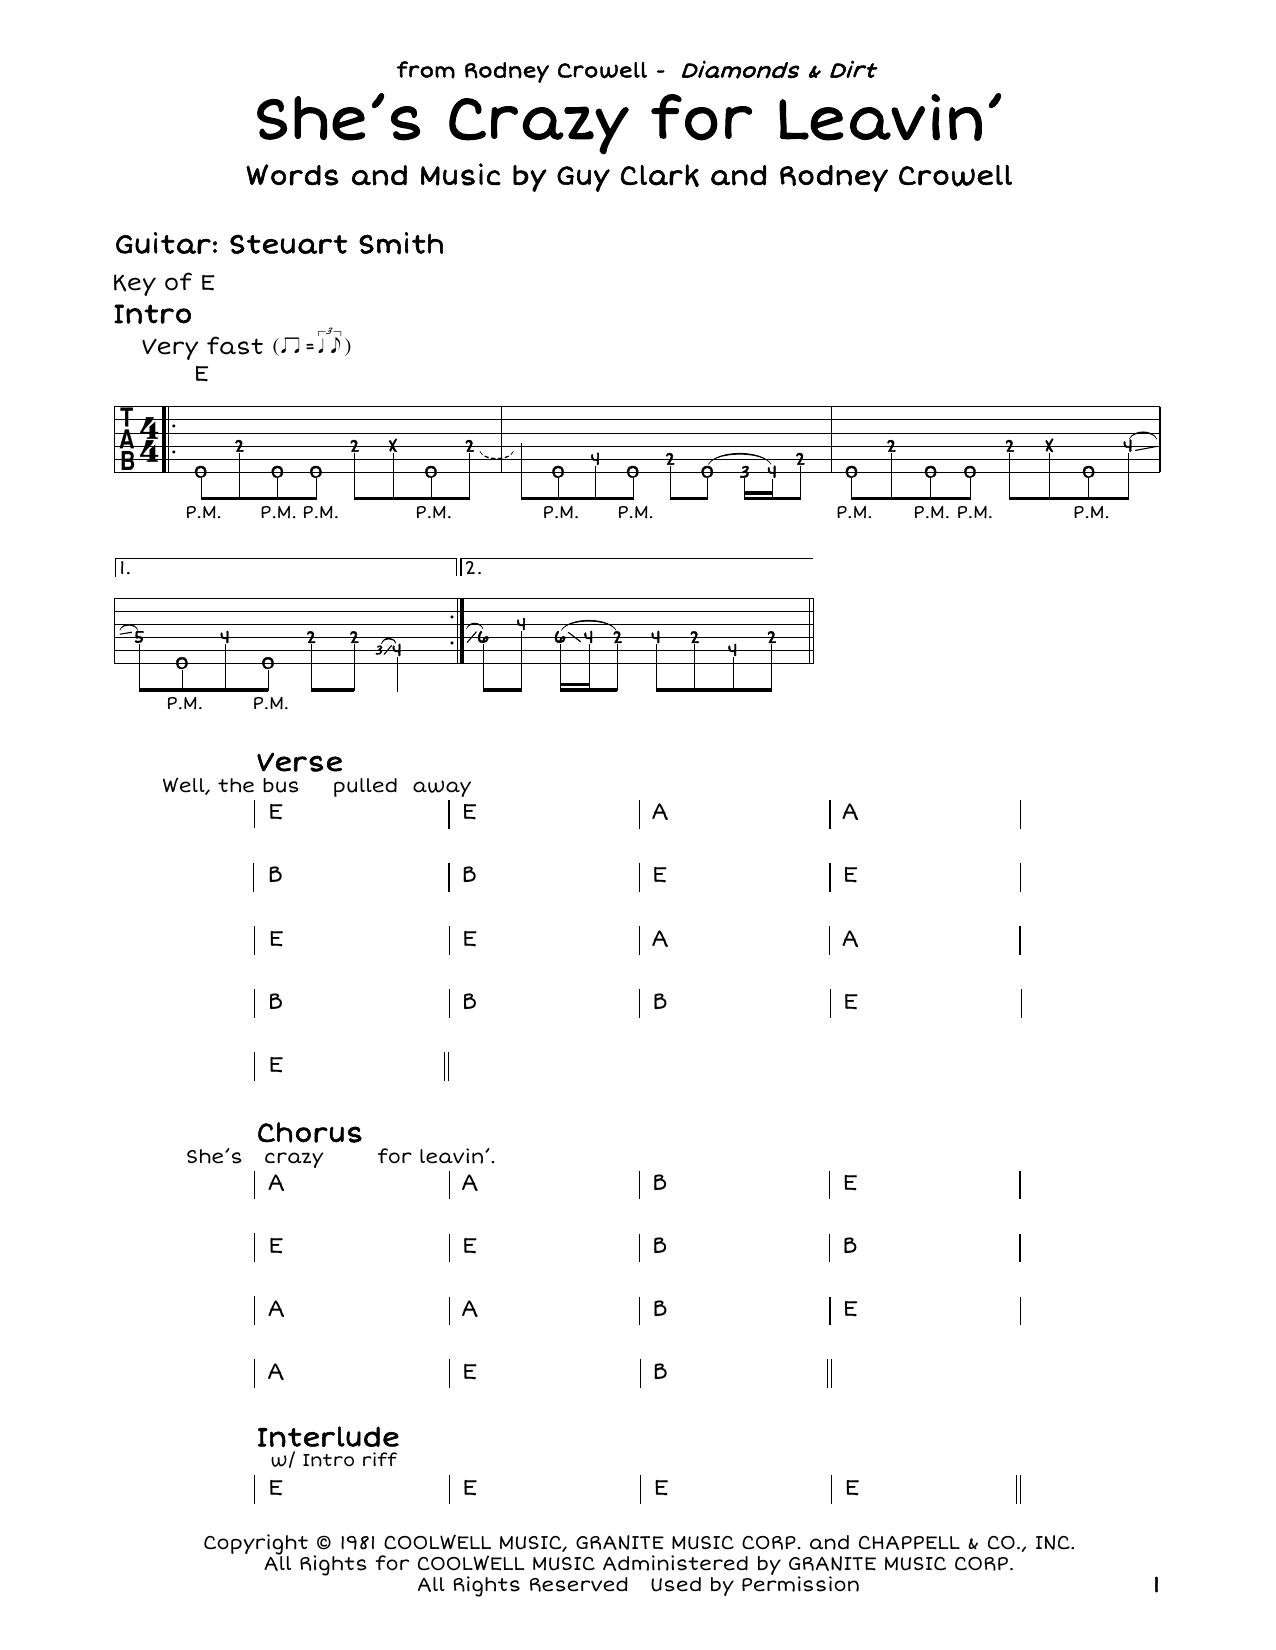 Rodney Crowell She's Crazy For Leavin' sheet music notes and chords. Download Printable PDF.